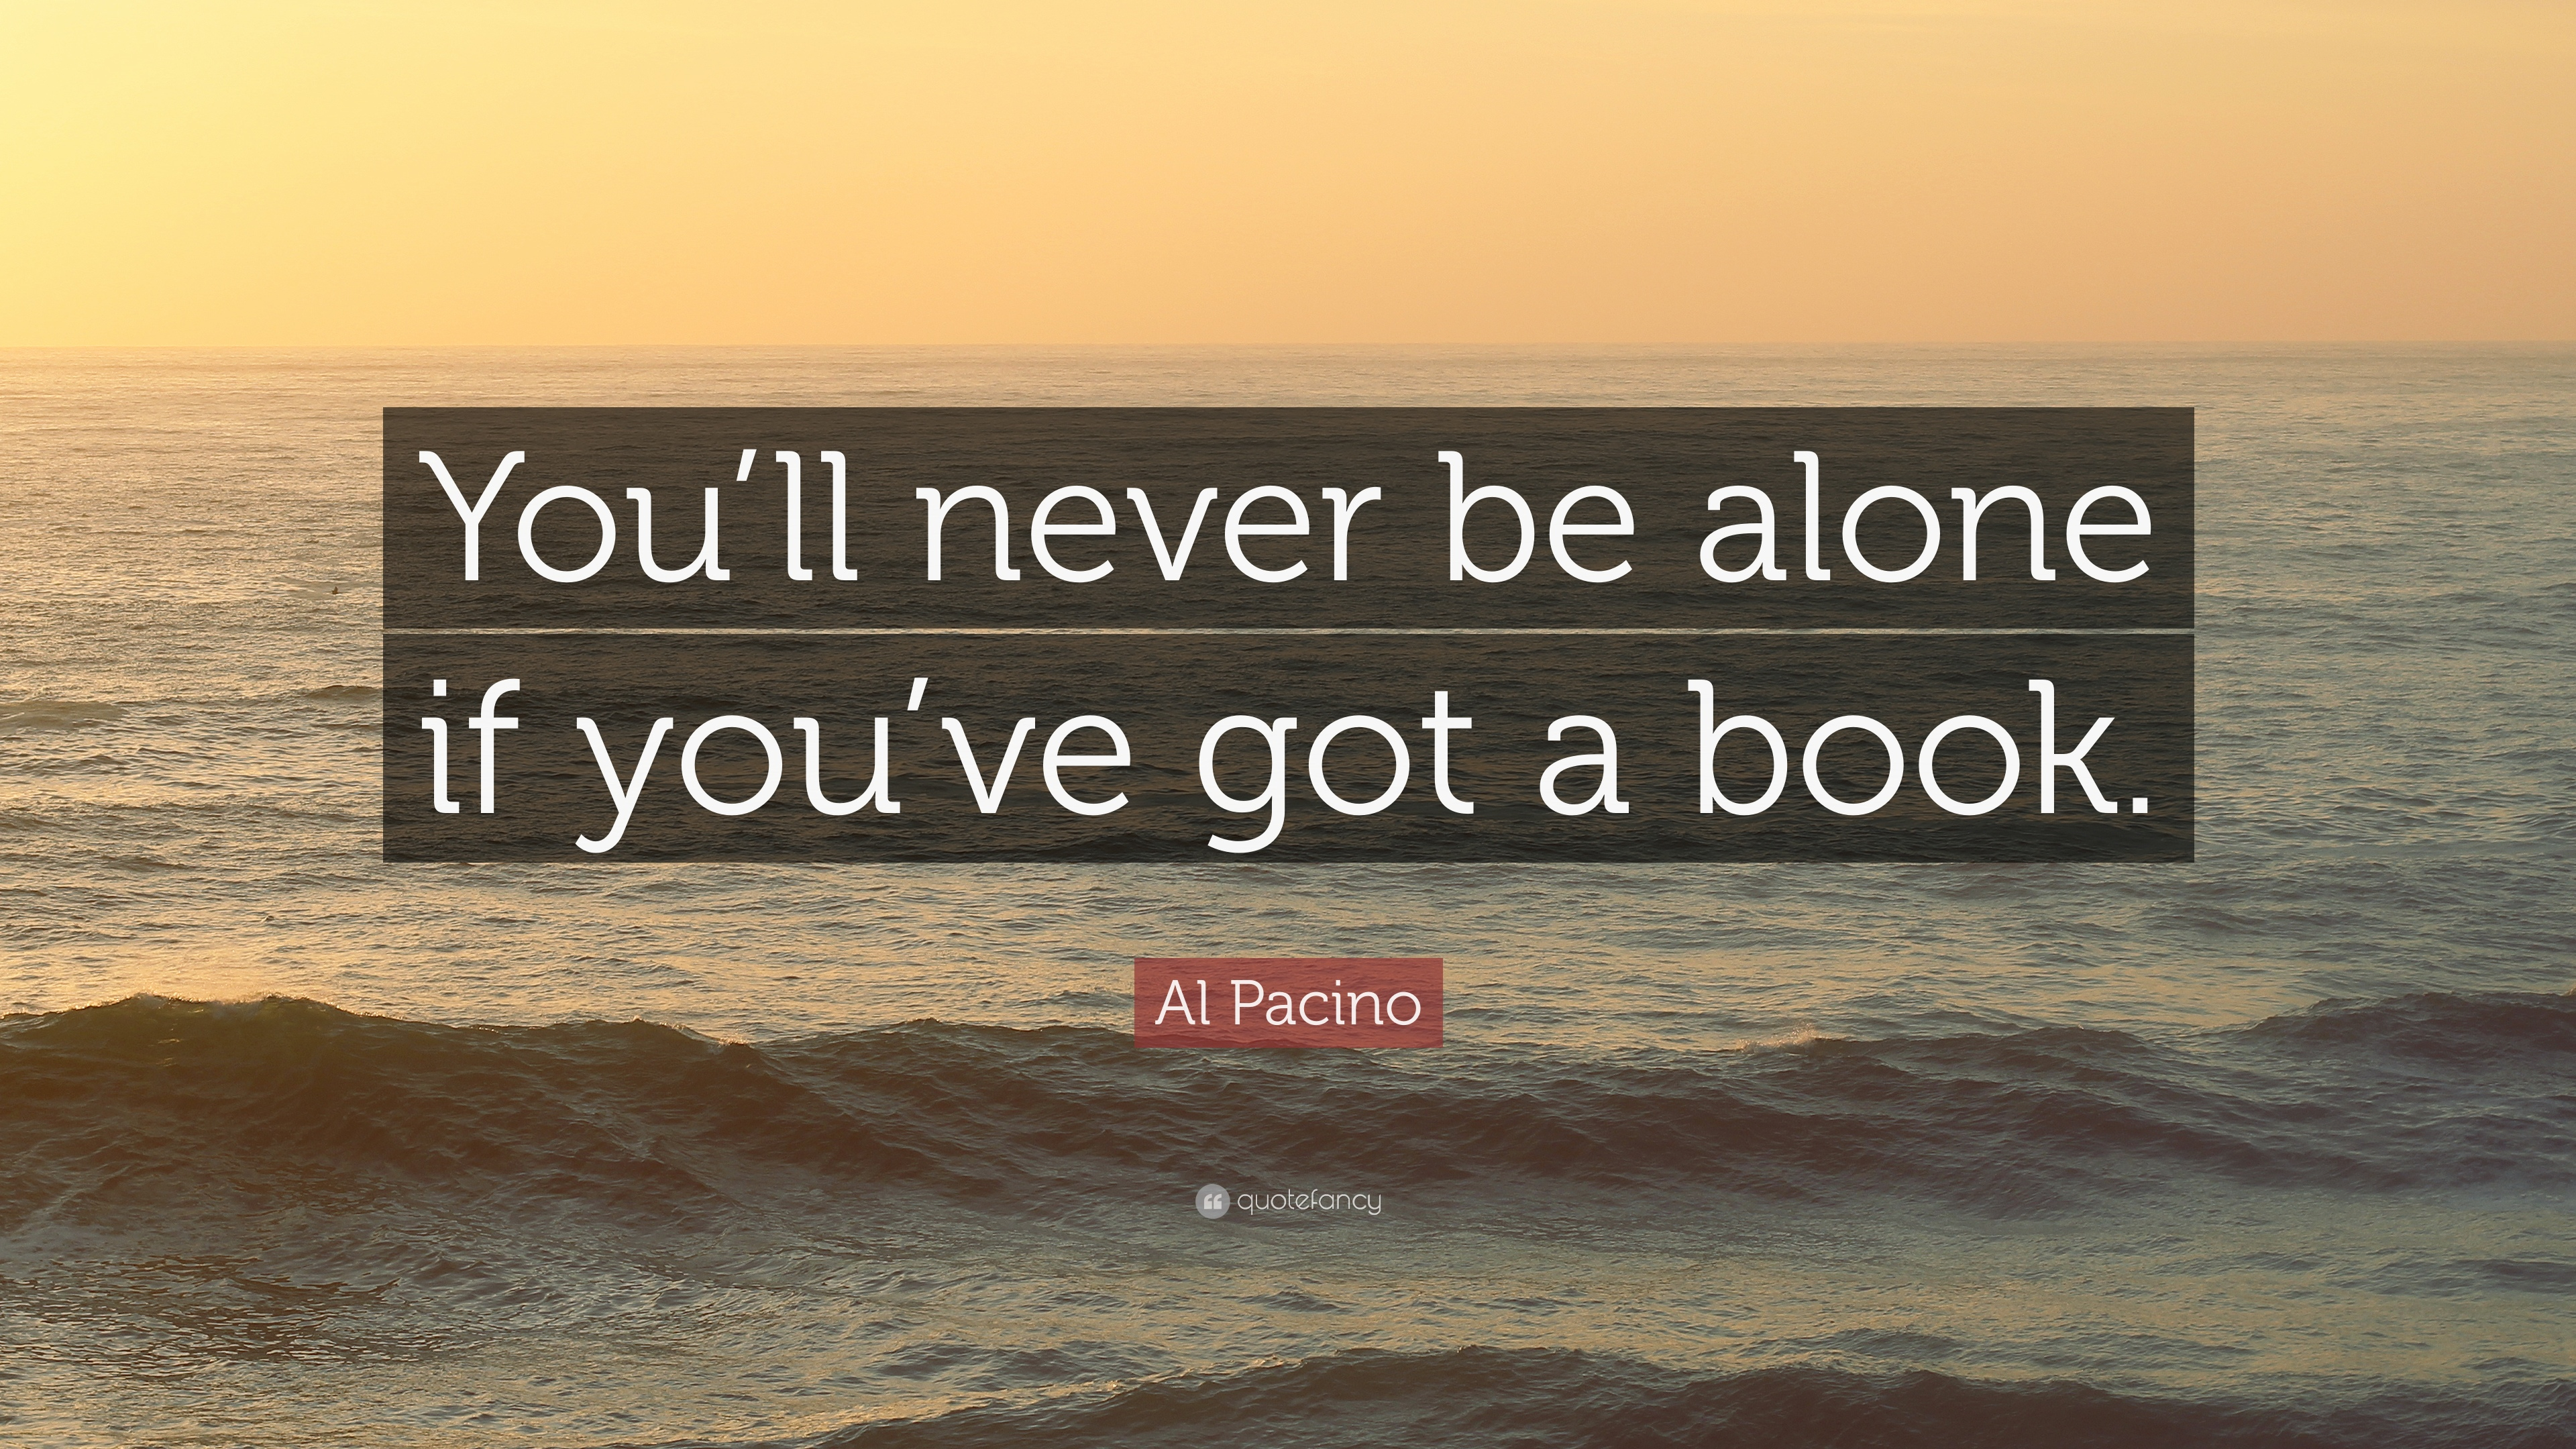 Al Pacino Quote Youll Never Be Alone If Youve Got A Book 10